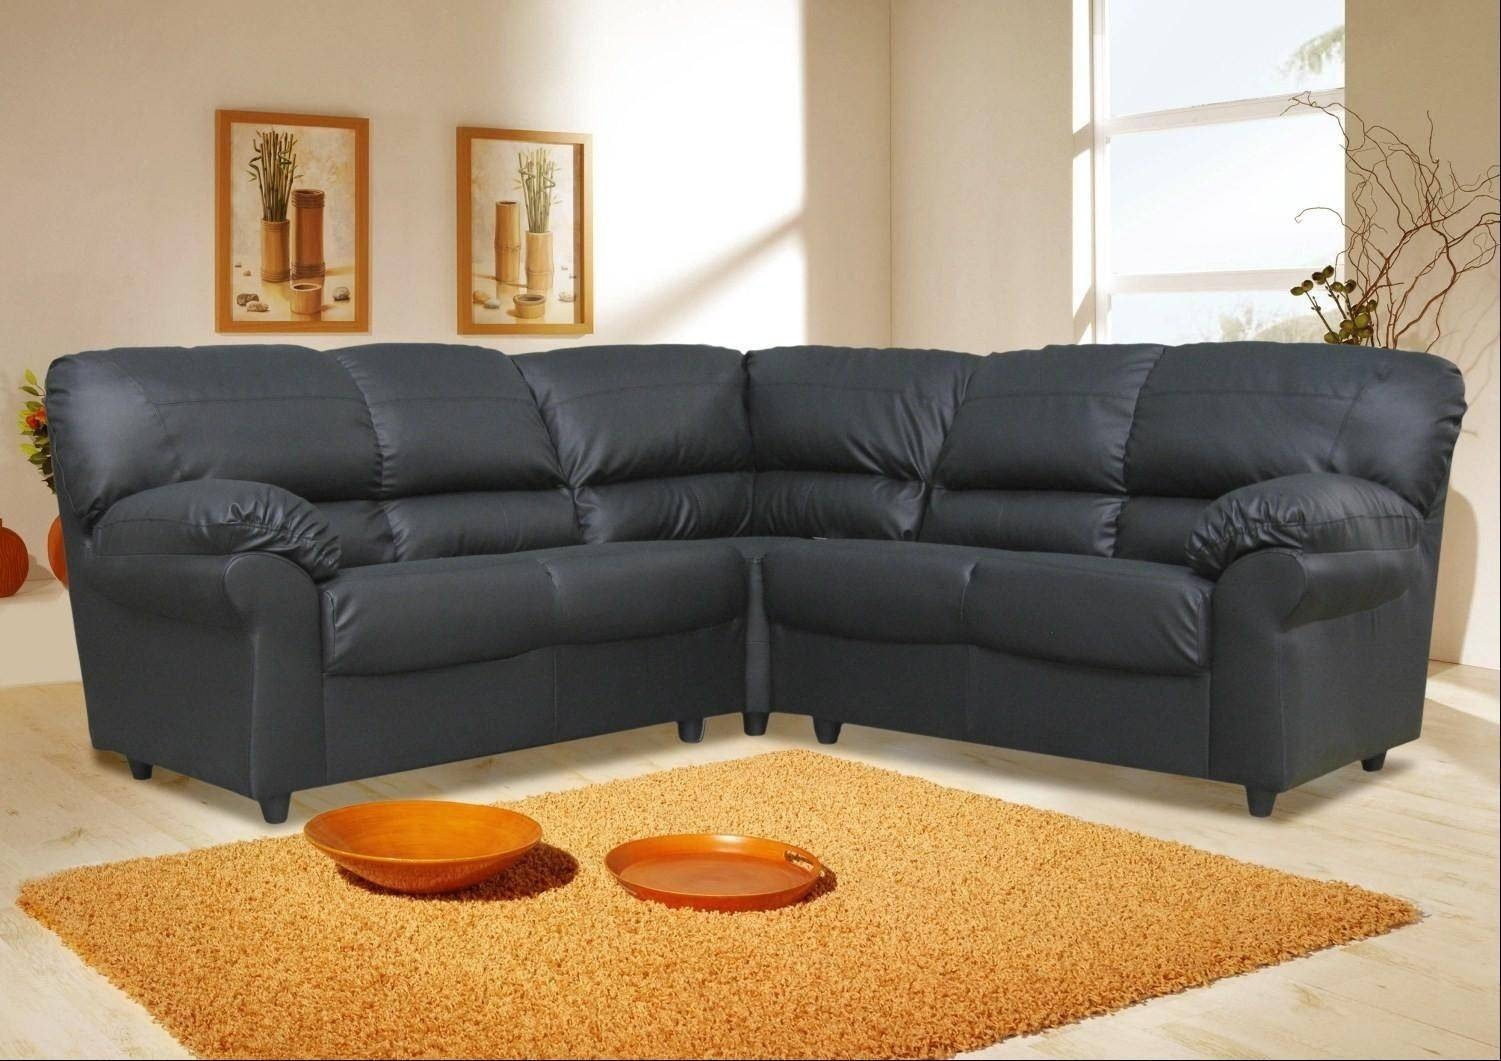 Sofas Center : Leather Corner Sofas Sale Clearance Brown Uk Ikea pertaining to Large Black Leather Corner Sofas (Image 25 of 30)